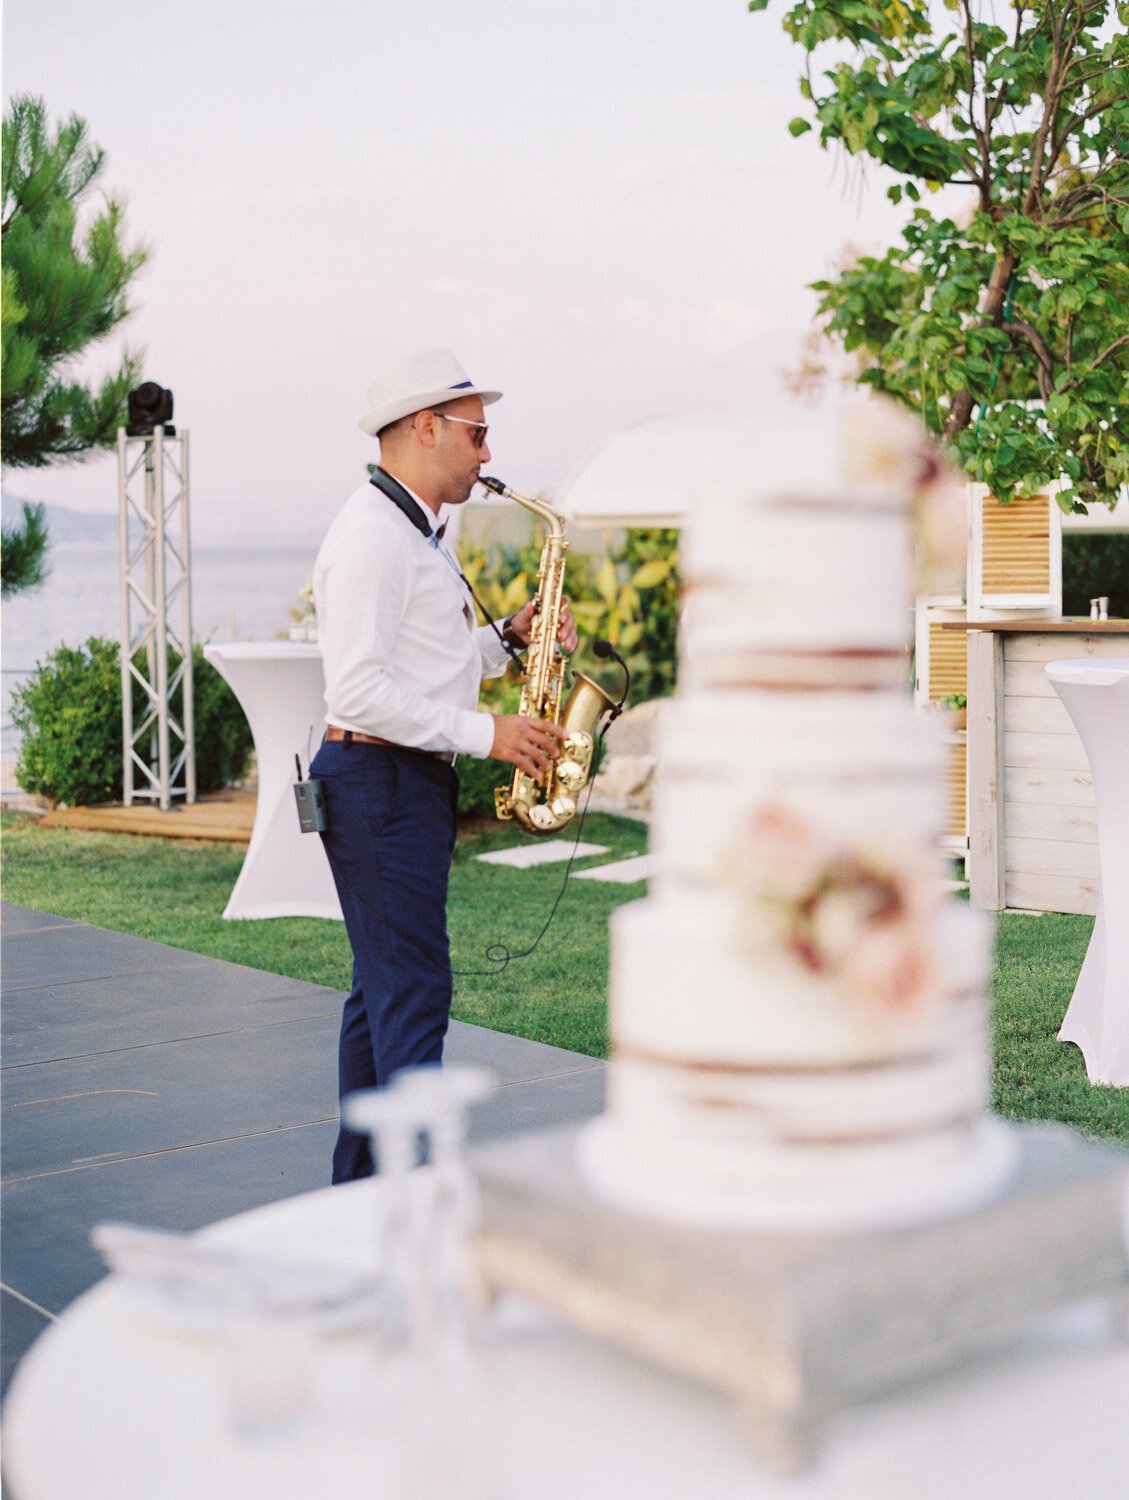 Greece-film-wedding-photography-by-Kostis-Mouselimis_092